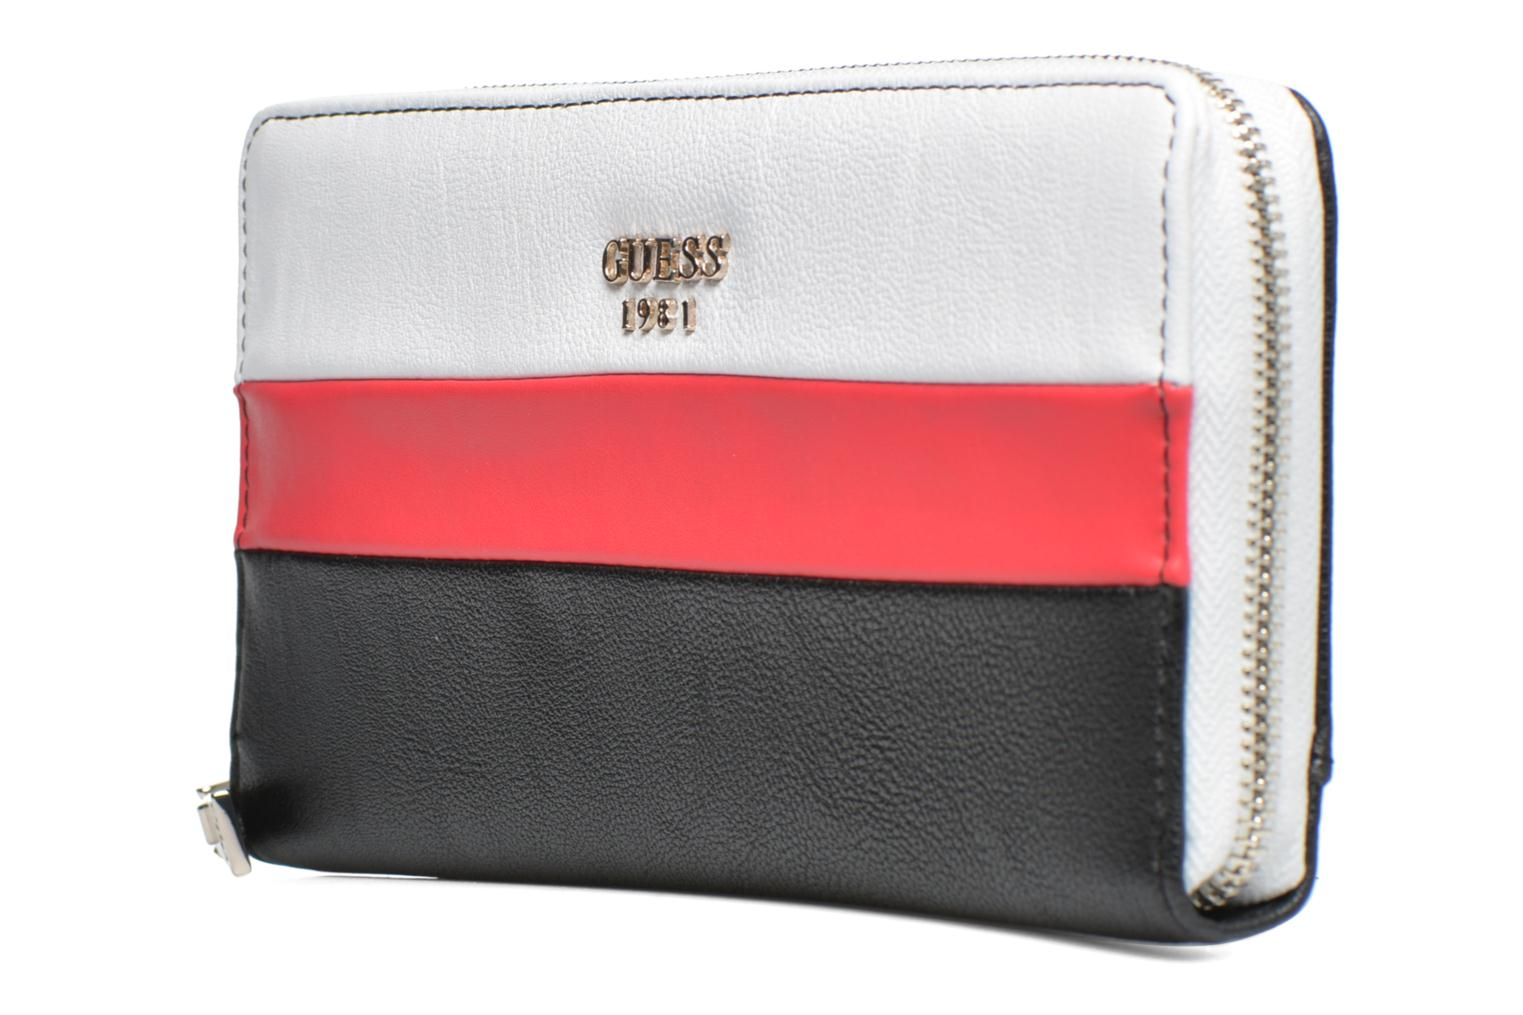 Petite Maroquinerie Guess Cate Cheque Organizer Multicolore vue portées chaussures